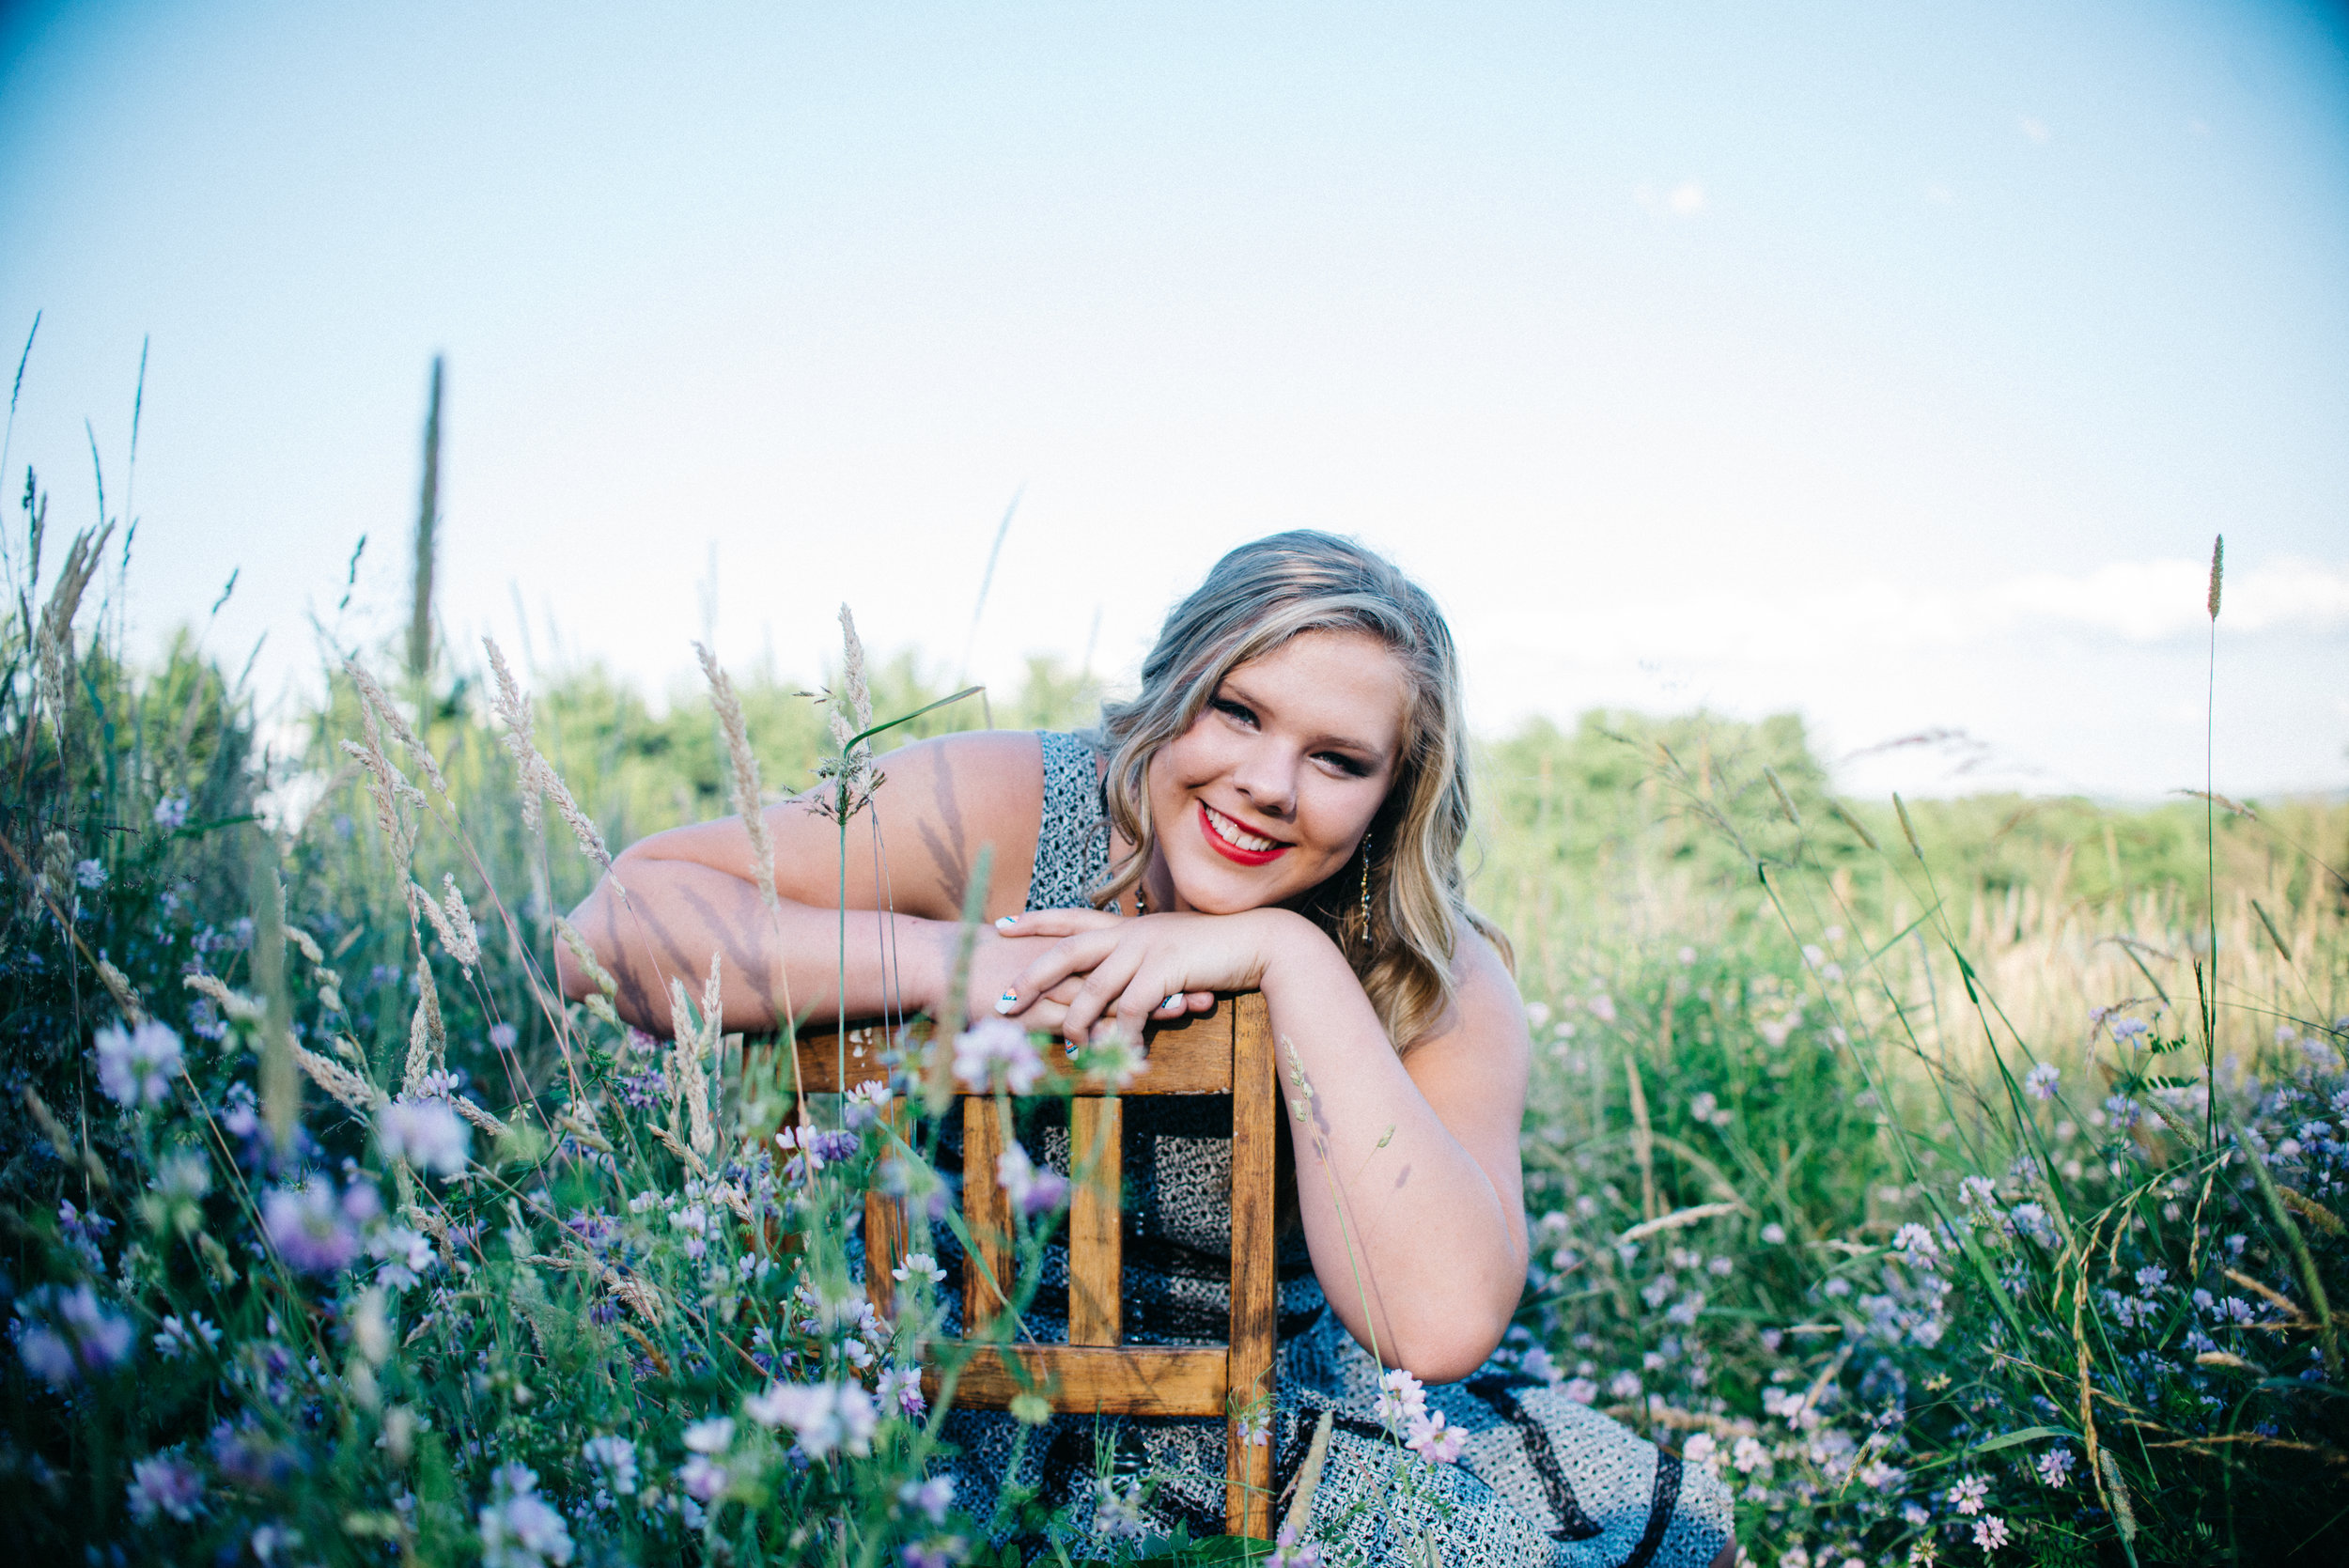 High school senior model wearing sundress sitting on wooden chair in a field of flowers